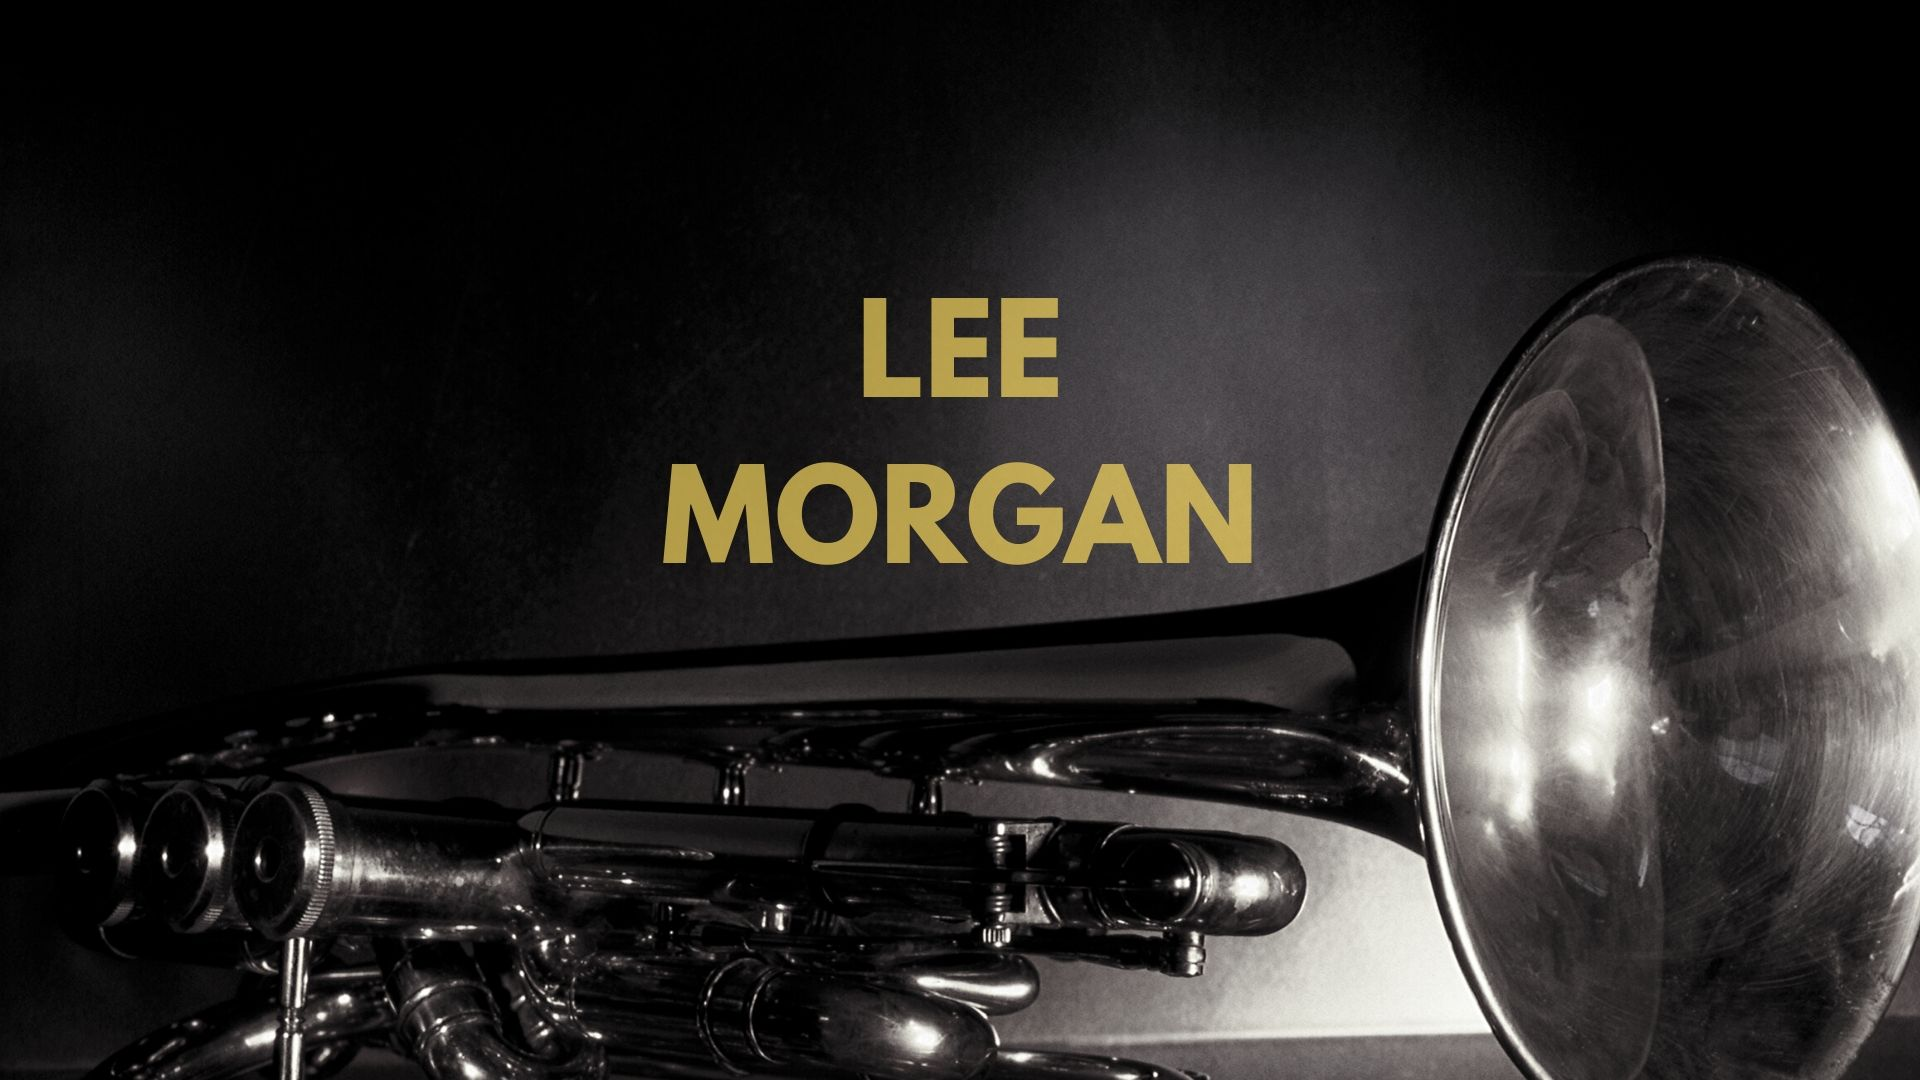 Lee Morgan title